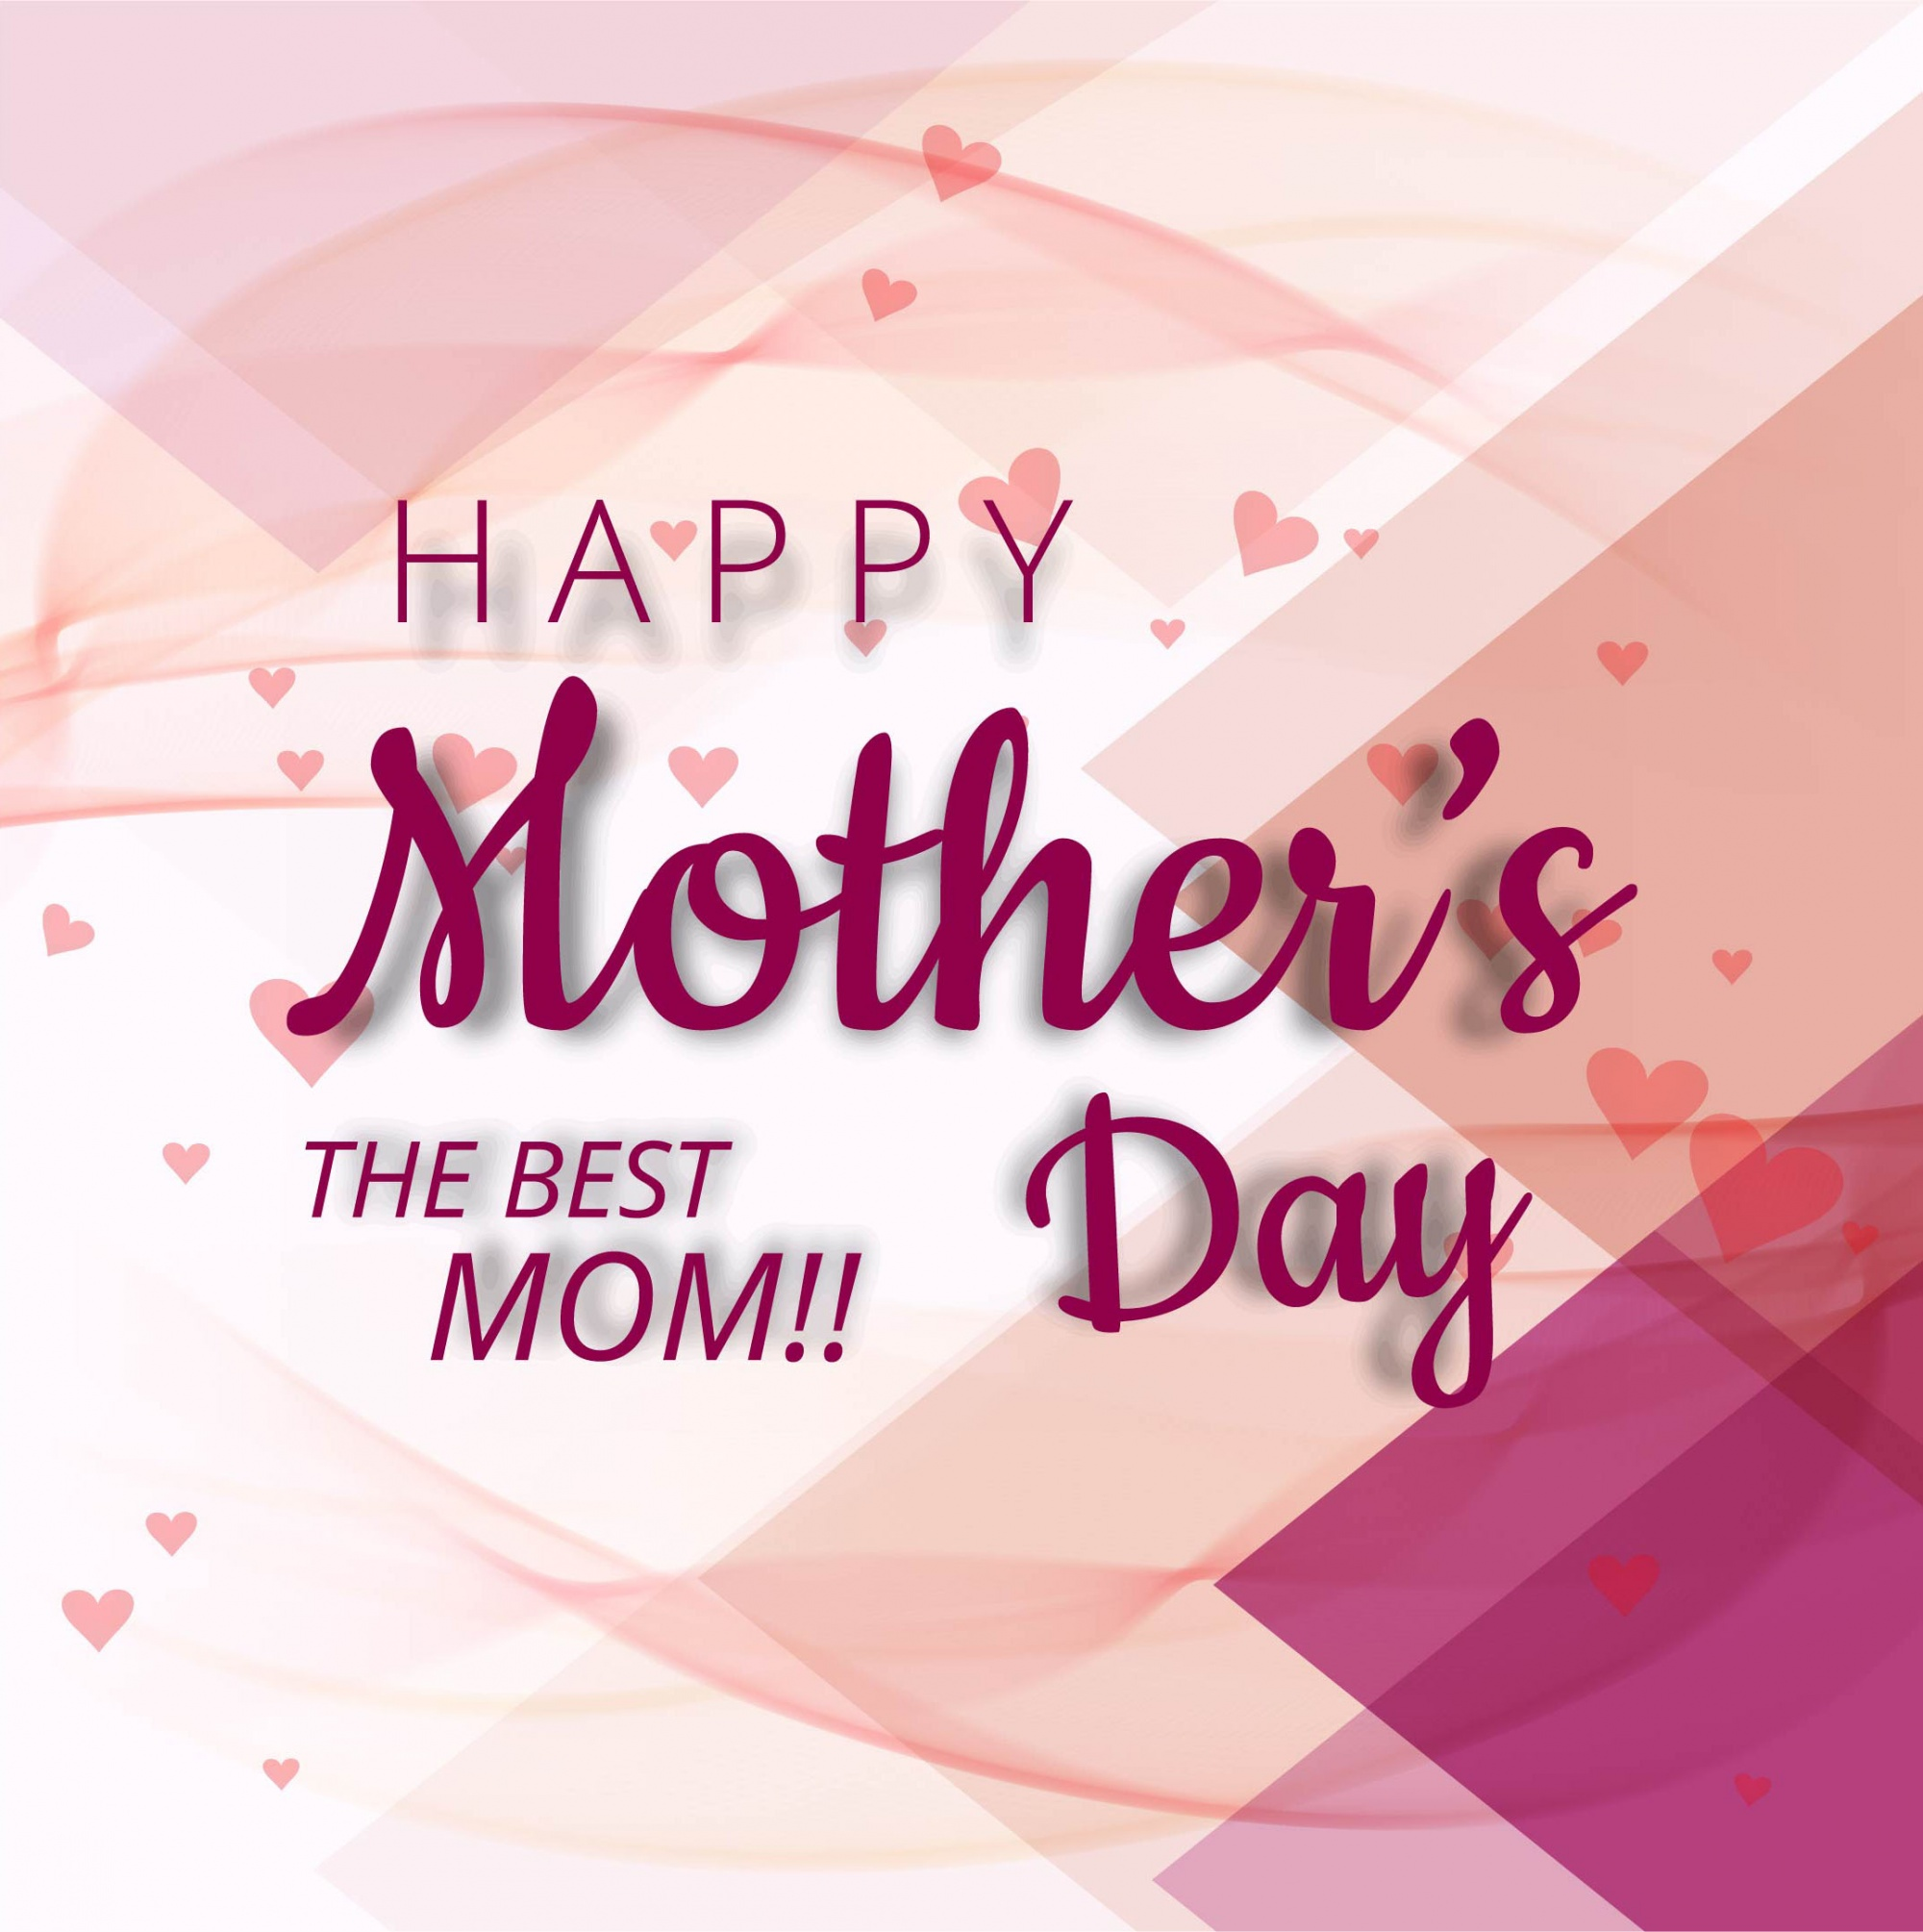 Abstract mother's day design